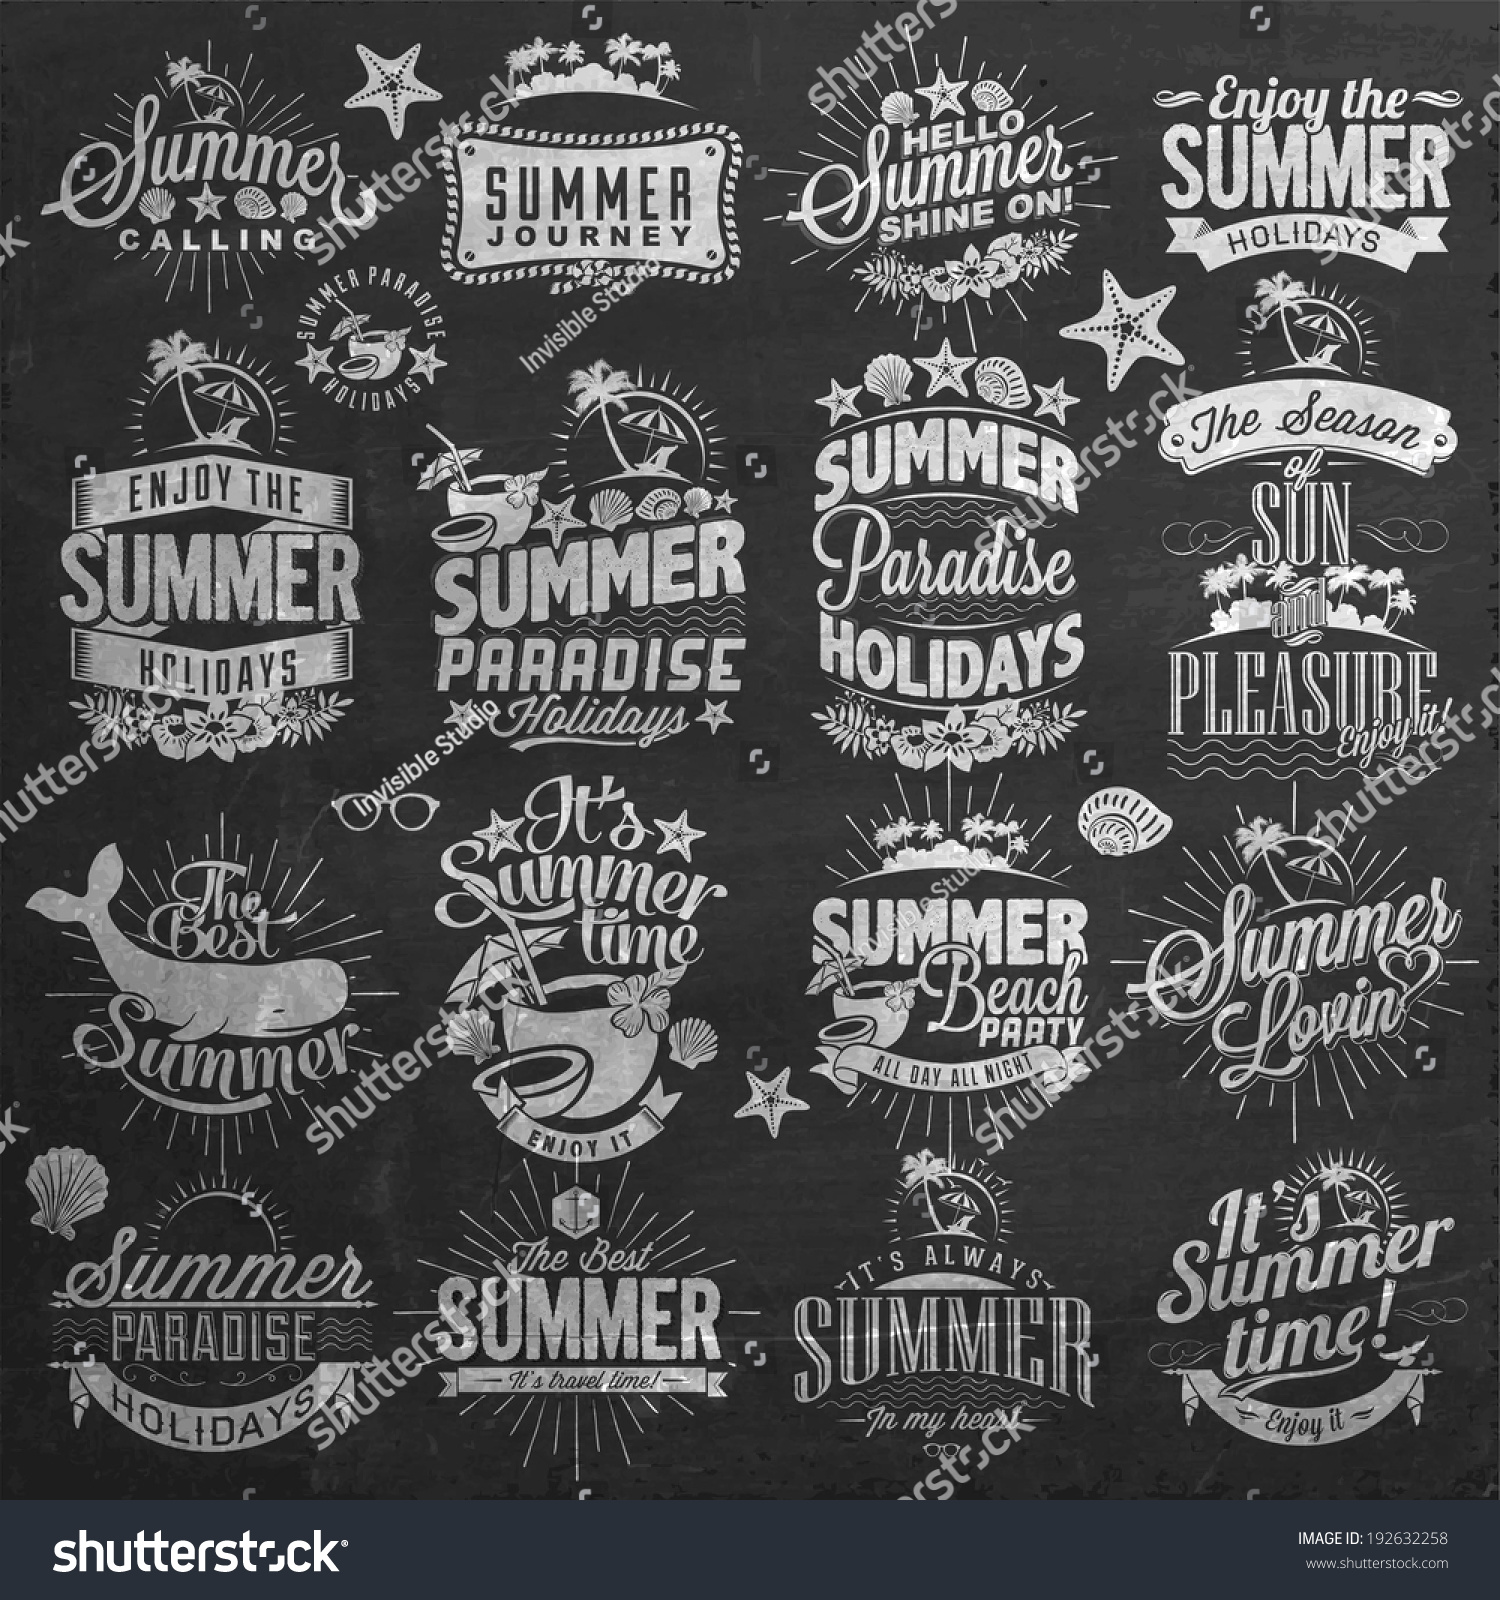 Chalkboard Designs Royalty Free Retro Summer Holidays Calligraphic 192632258 Stock